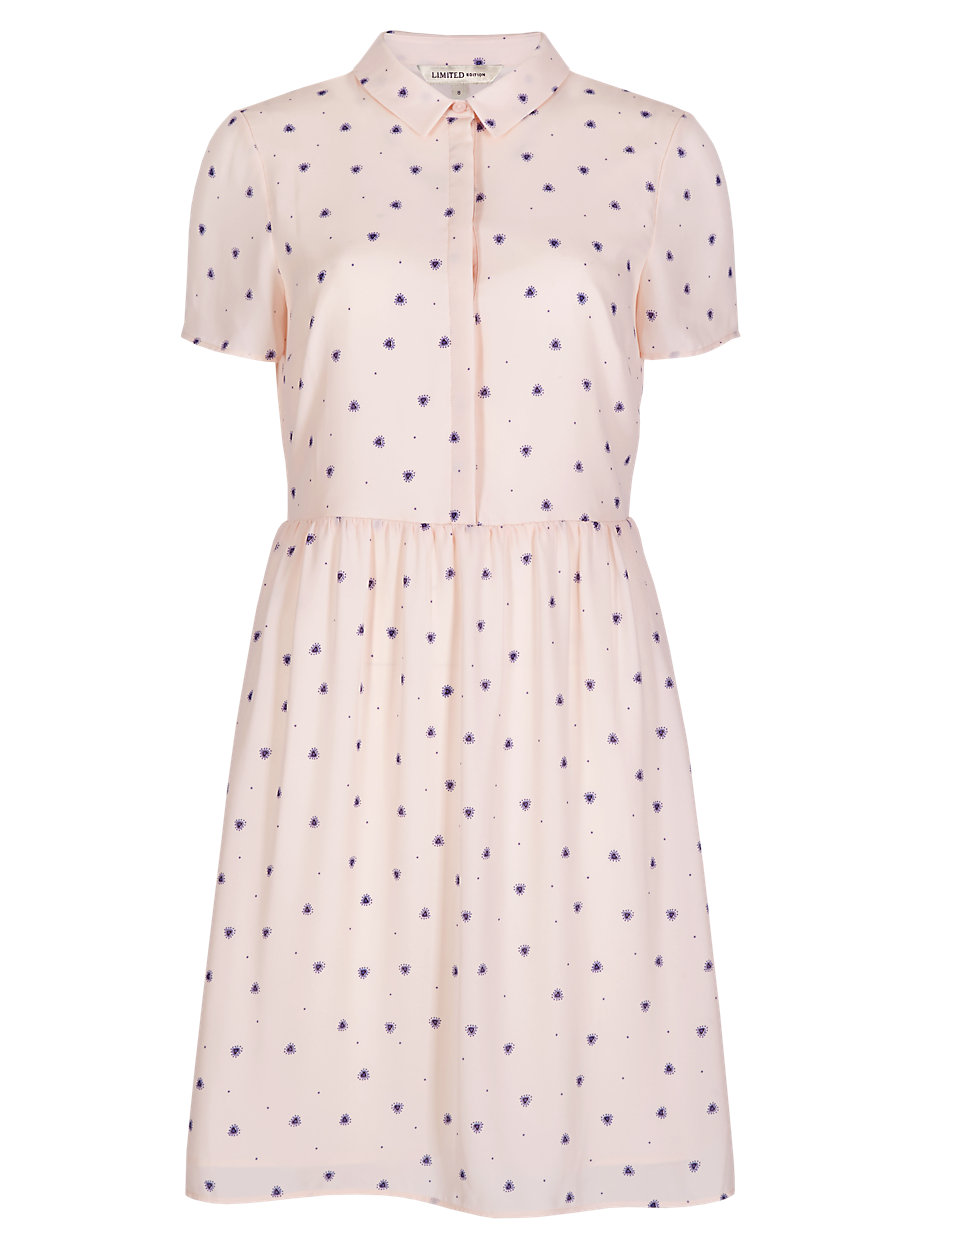 No Peep™ Heart Print Shift Dress £45